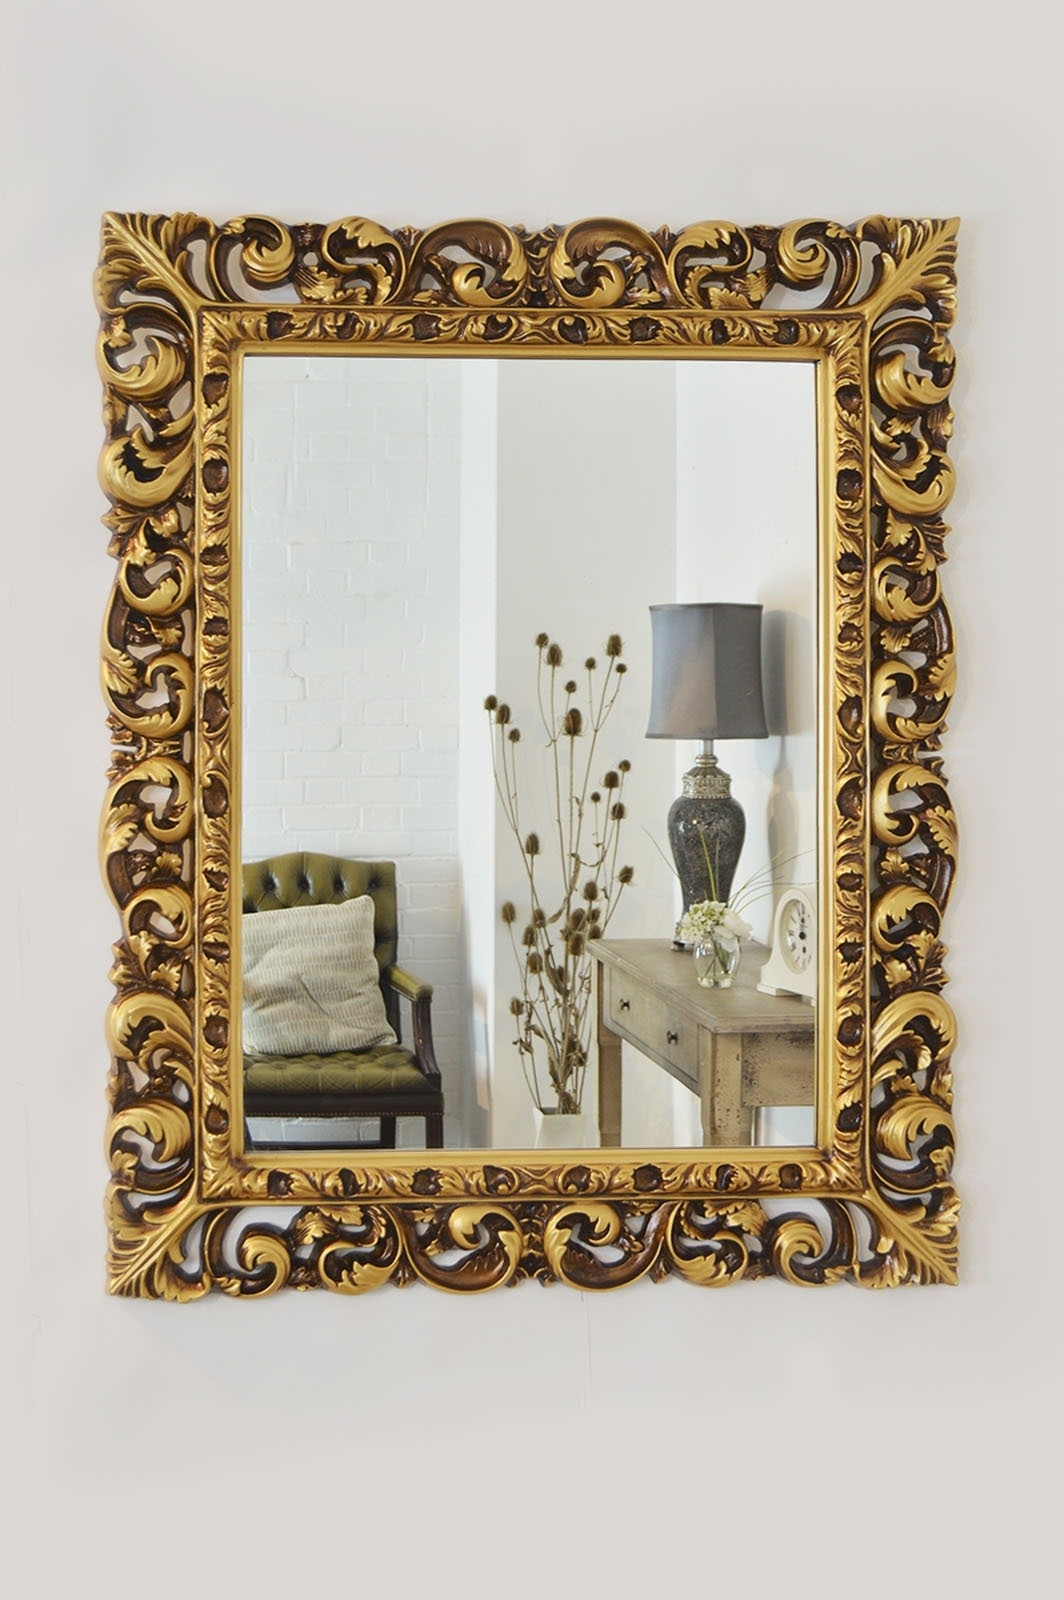 Large Antique Style Gold Carved Baroque Wall Mirror 3ft5 X 2ft8 With Regard To Baroque Gold Mirror (Image 13 of 15)